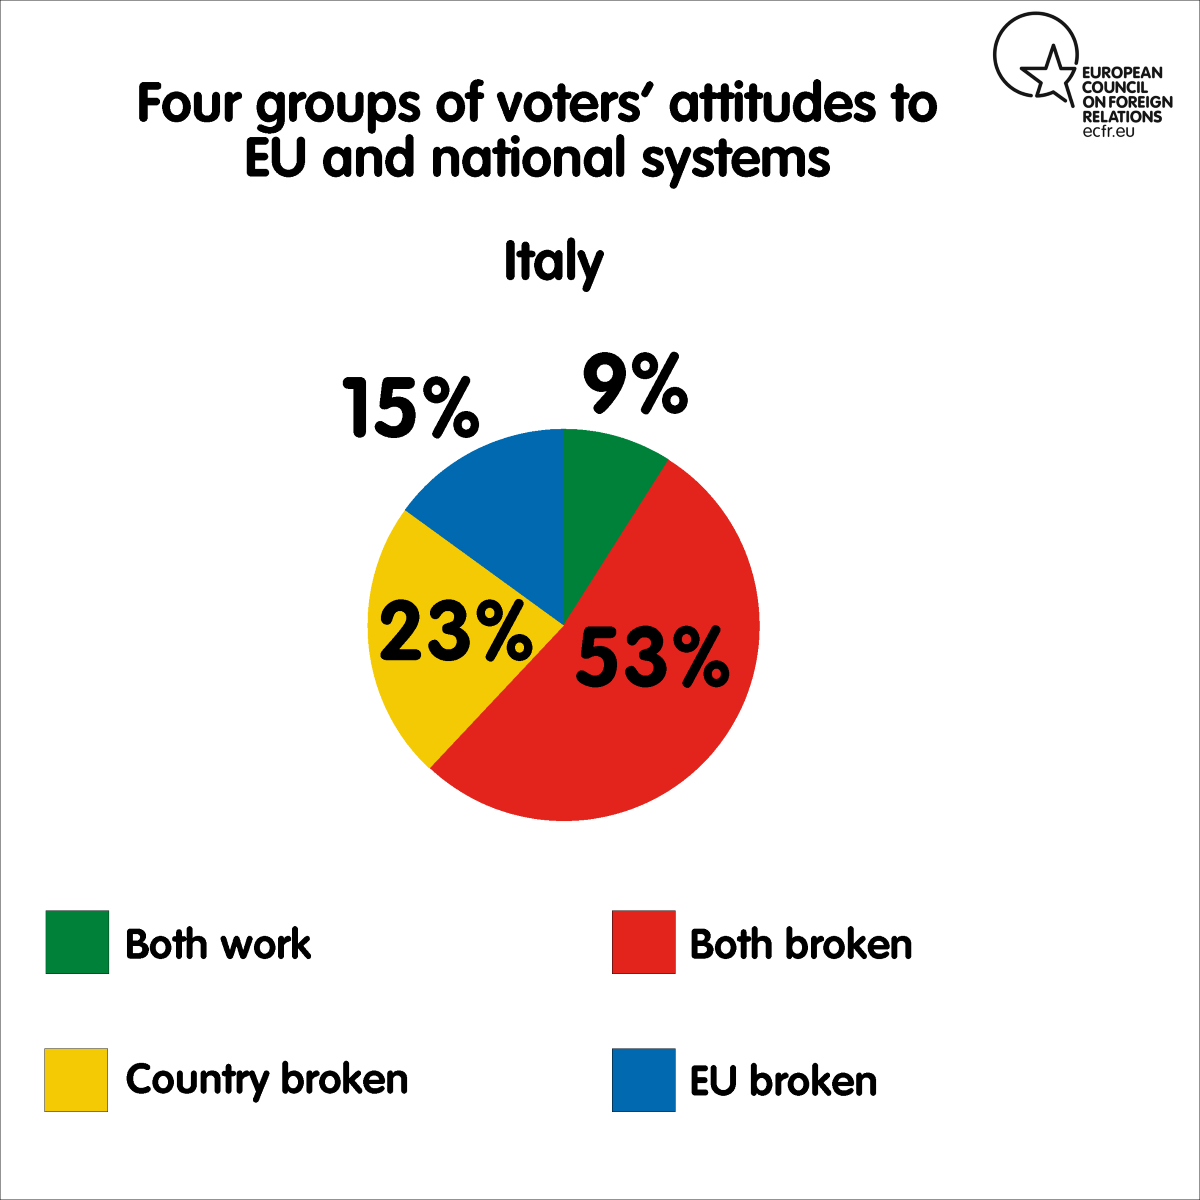 Four groups of voters' attitudes to EU and national systems in Italy